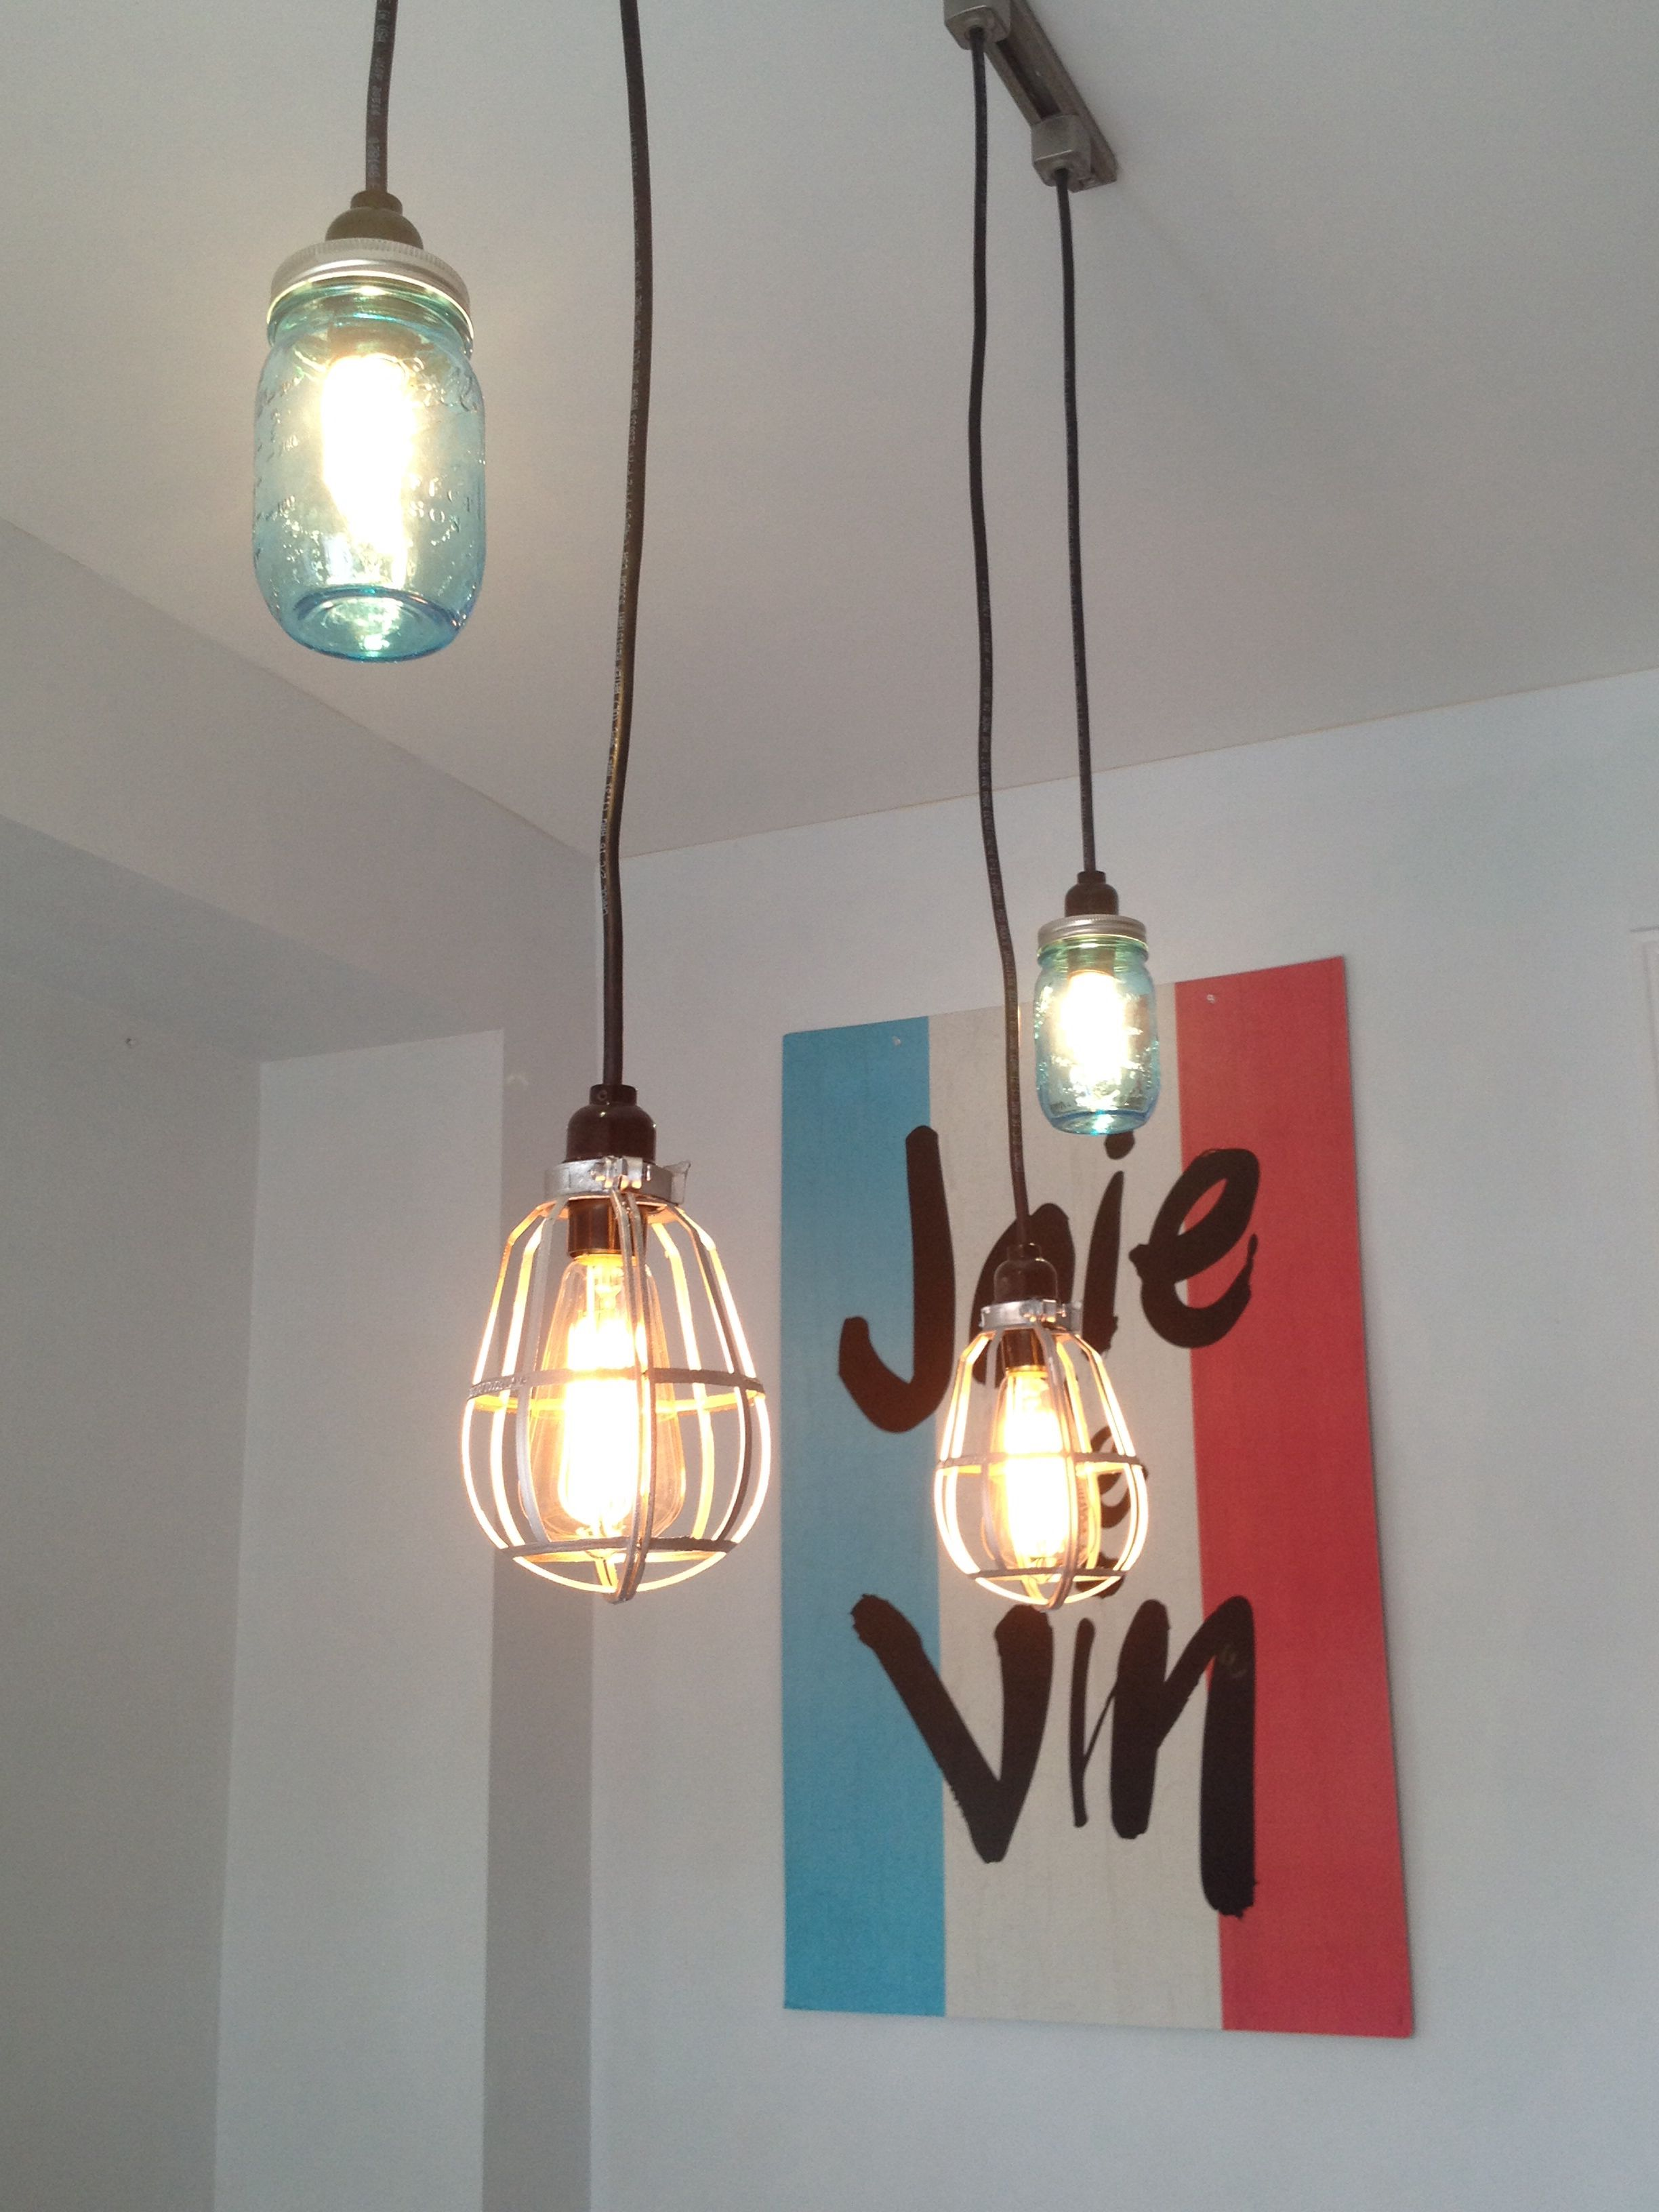 used track lighting. DIY Lighting. Turn Any Track Lighting Into Your Own. Used Blue Mason Jars And Edison Bulbs For The Industrial Feel Look.